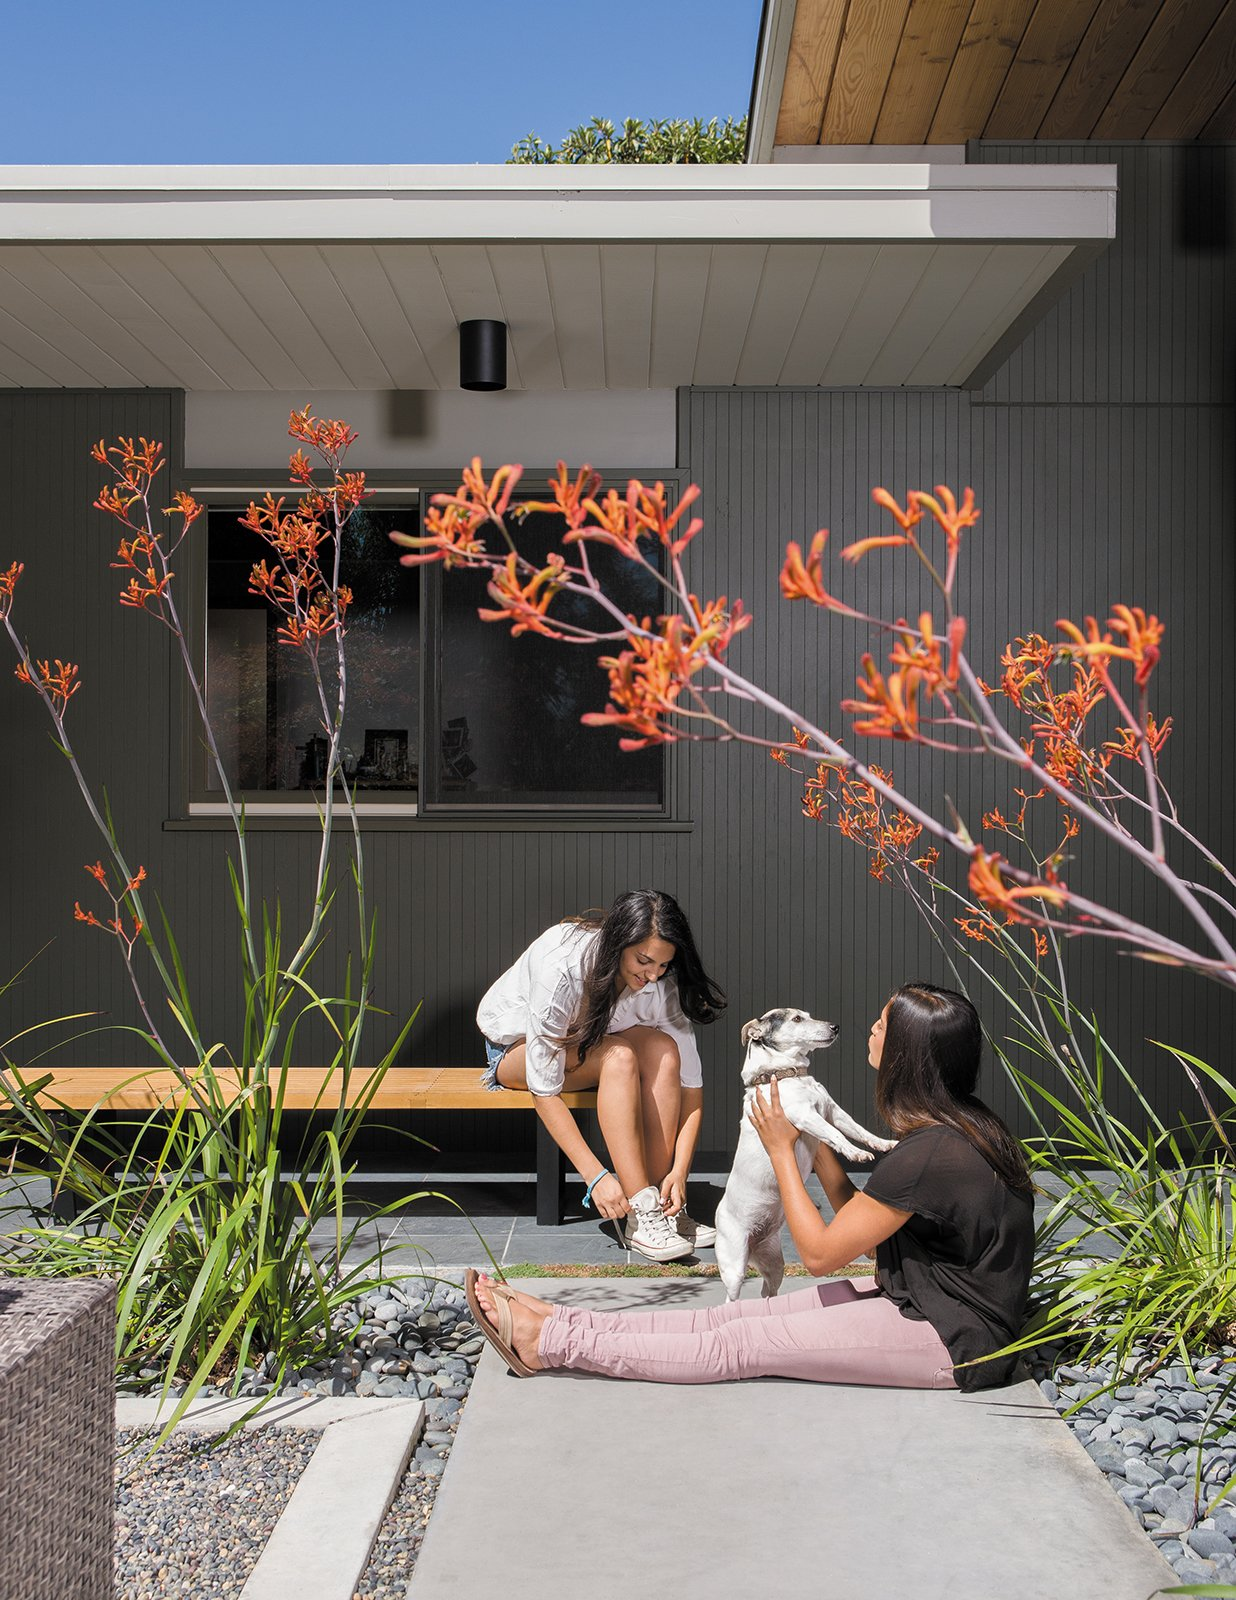 Their daughters, Annapurna, left, and Siddartha, play with their dog, Anouck, beneath the kangaroo paws in the entry garden courtyard.  Photo 12 of 25 in 25 Dogs Living in the Modern World from Creative Landscape Design for a Renovated Eichler in California